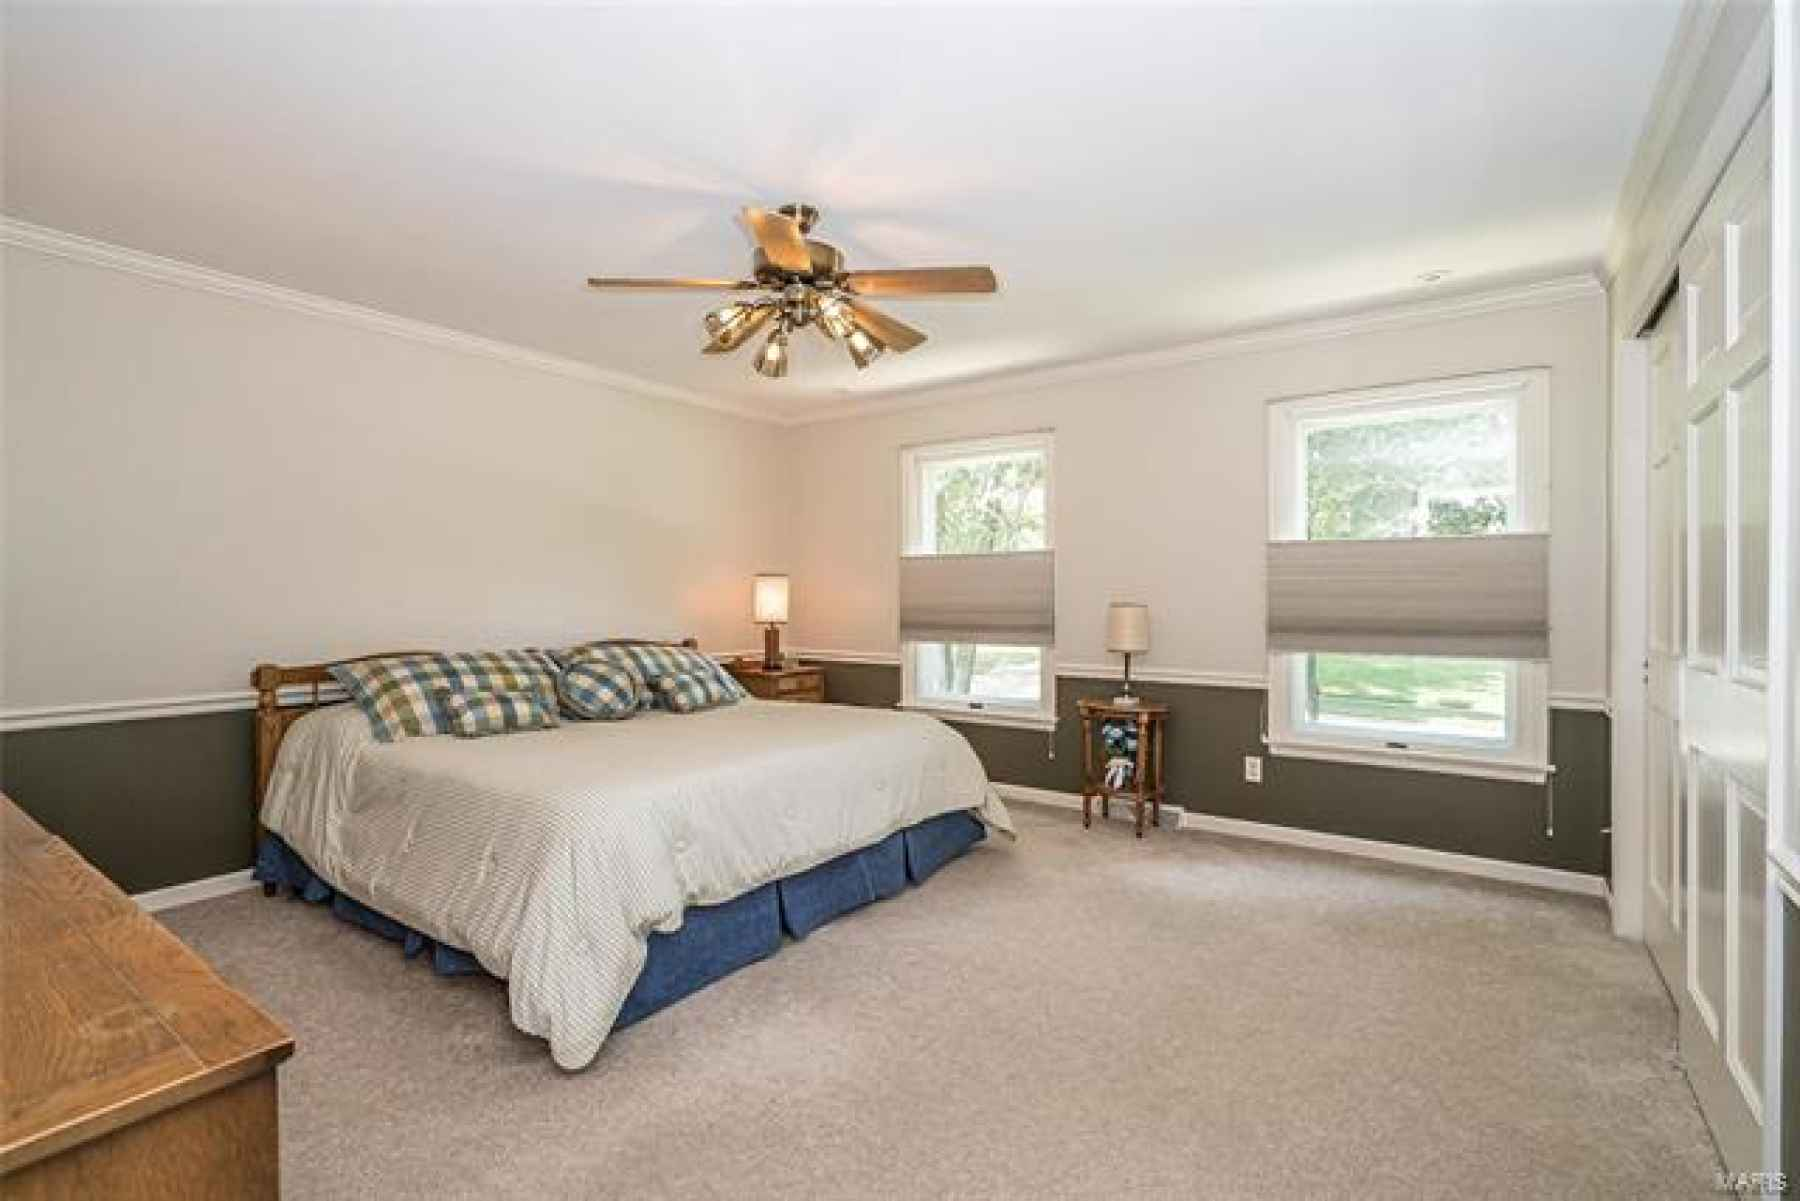 Large Bedroom with fan and built-in closet organizer